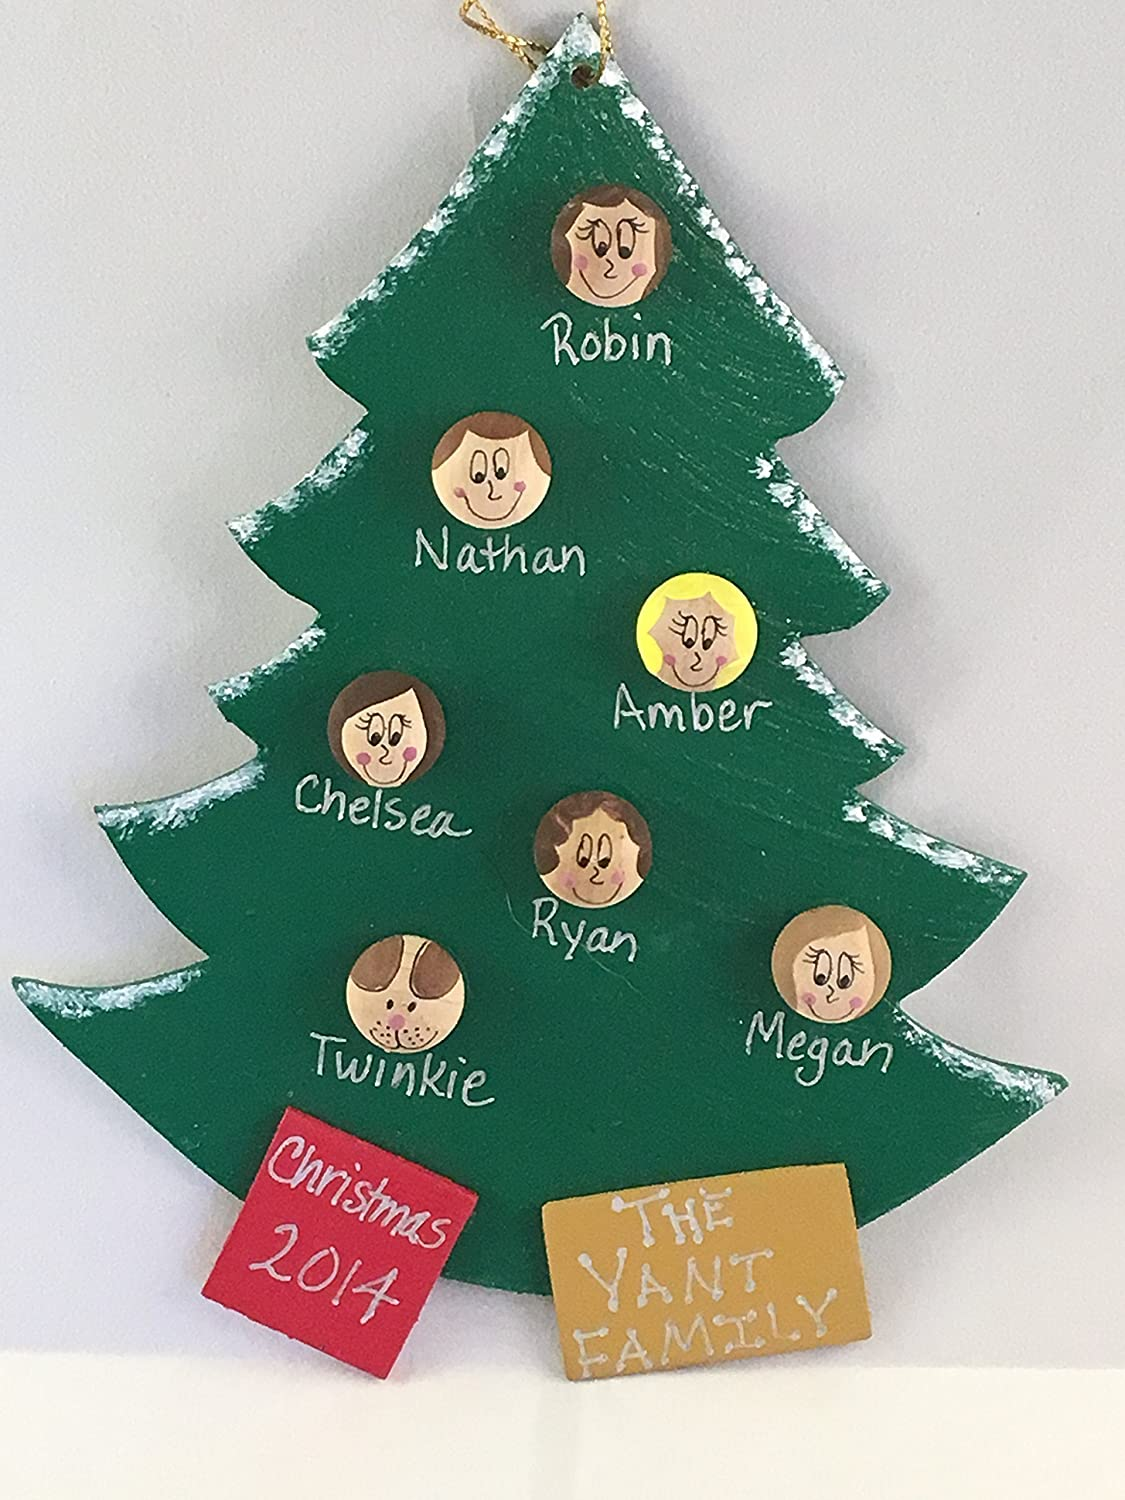 Amazon.com: Personalized Family Christmas Tree Ornament - Up to 16 ...